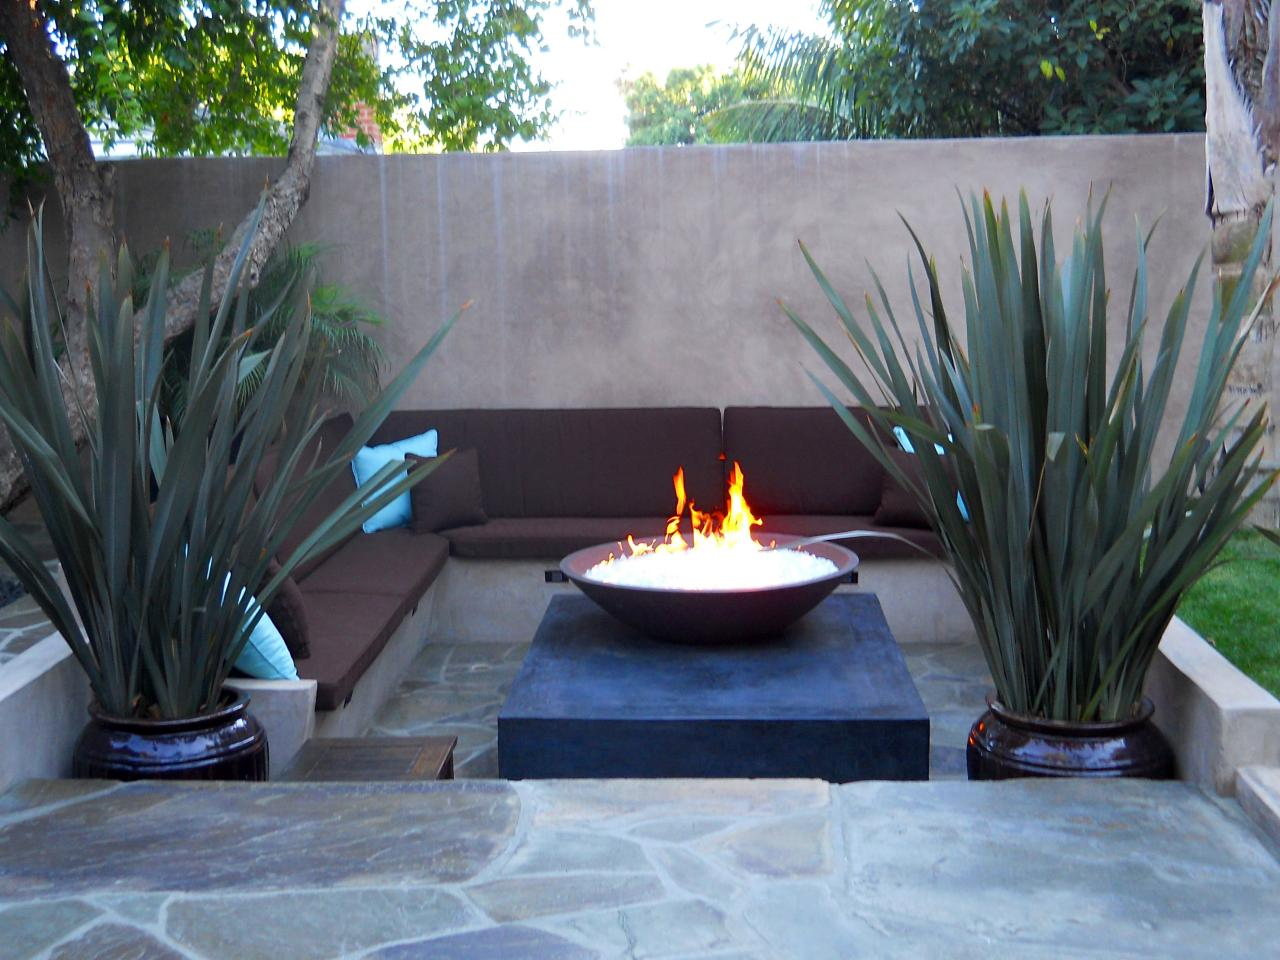 Fire Pit Ideas Backyard : Fire Pit Design Ideas  DIY Shed, Pergola, Fence, Deck & More Outdoor